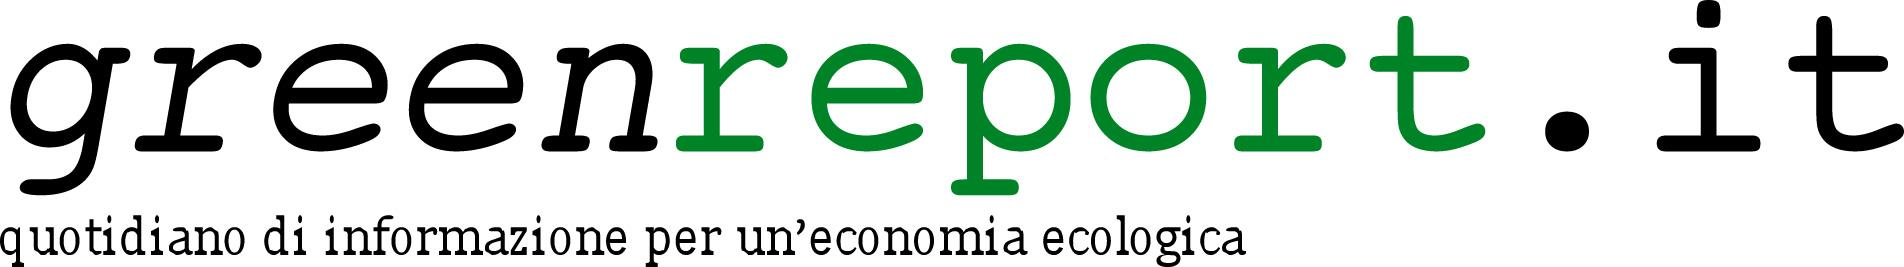 greenreport_logo